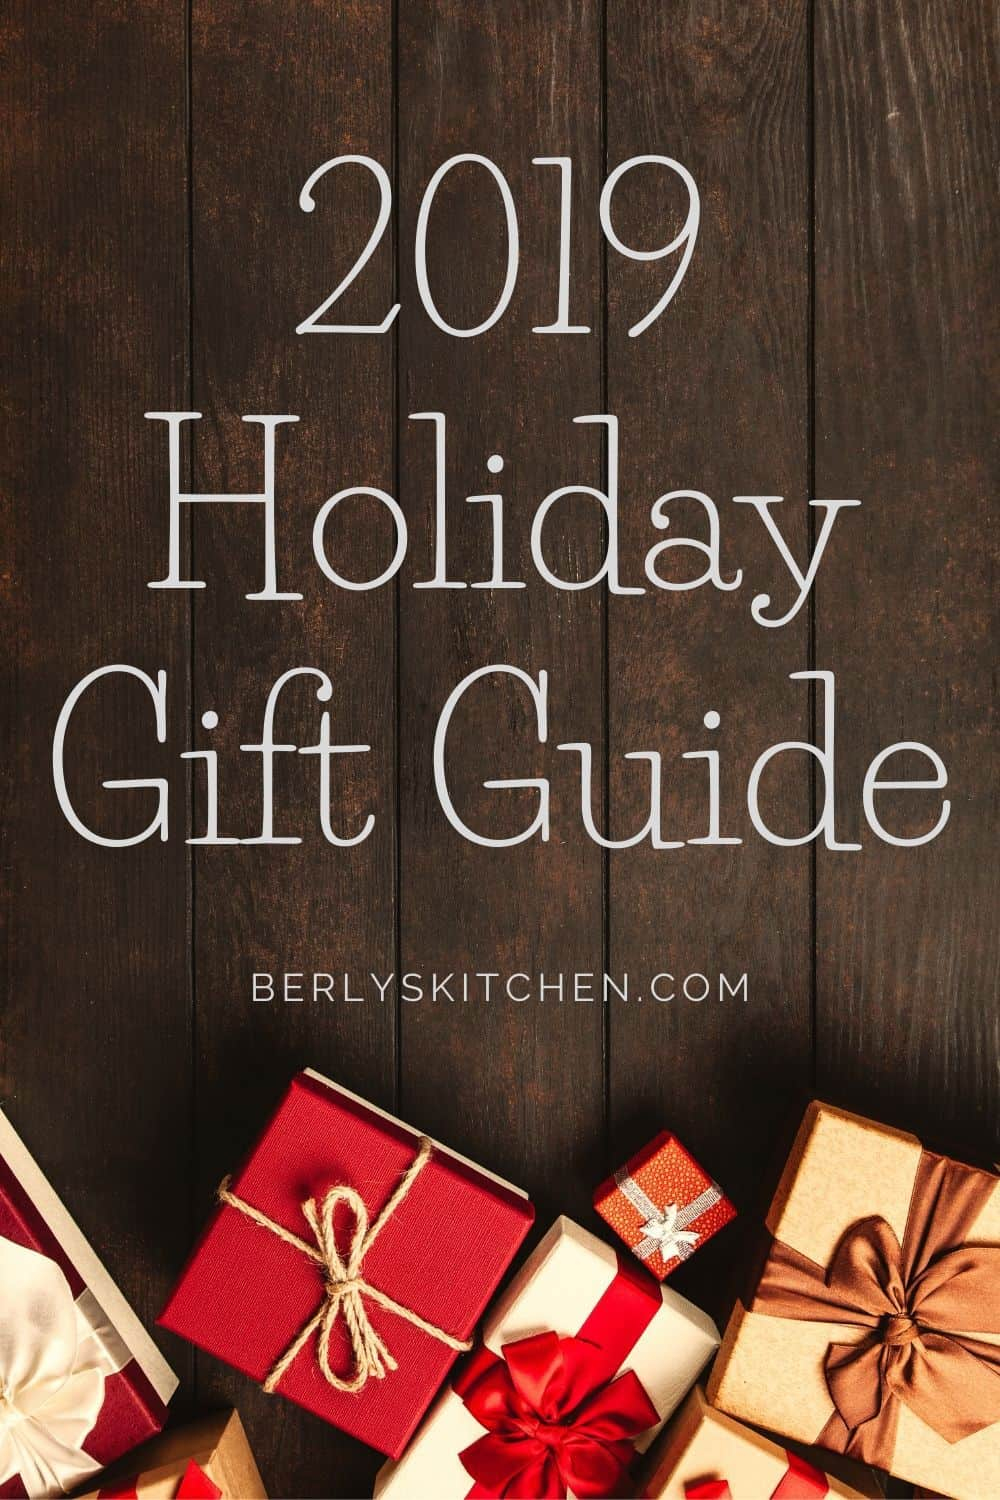 2019 Holiday Gift Guide pin used for Pinterest.